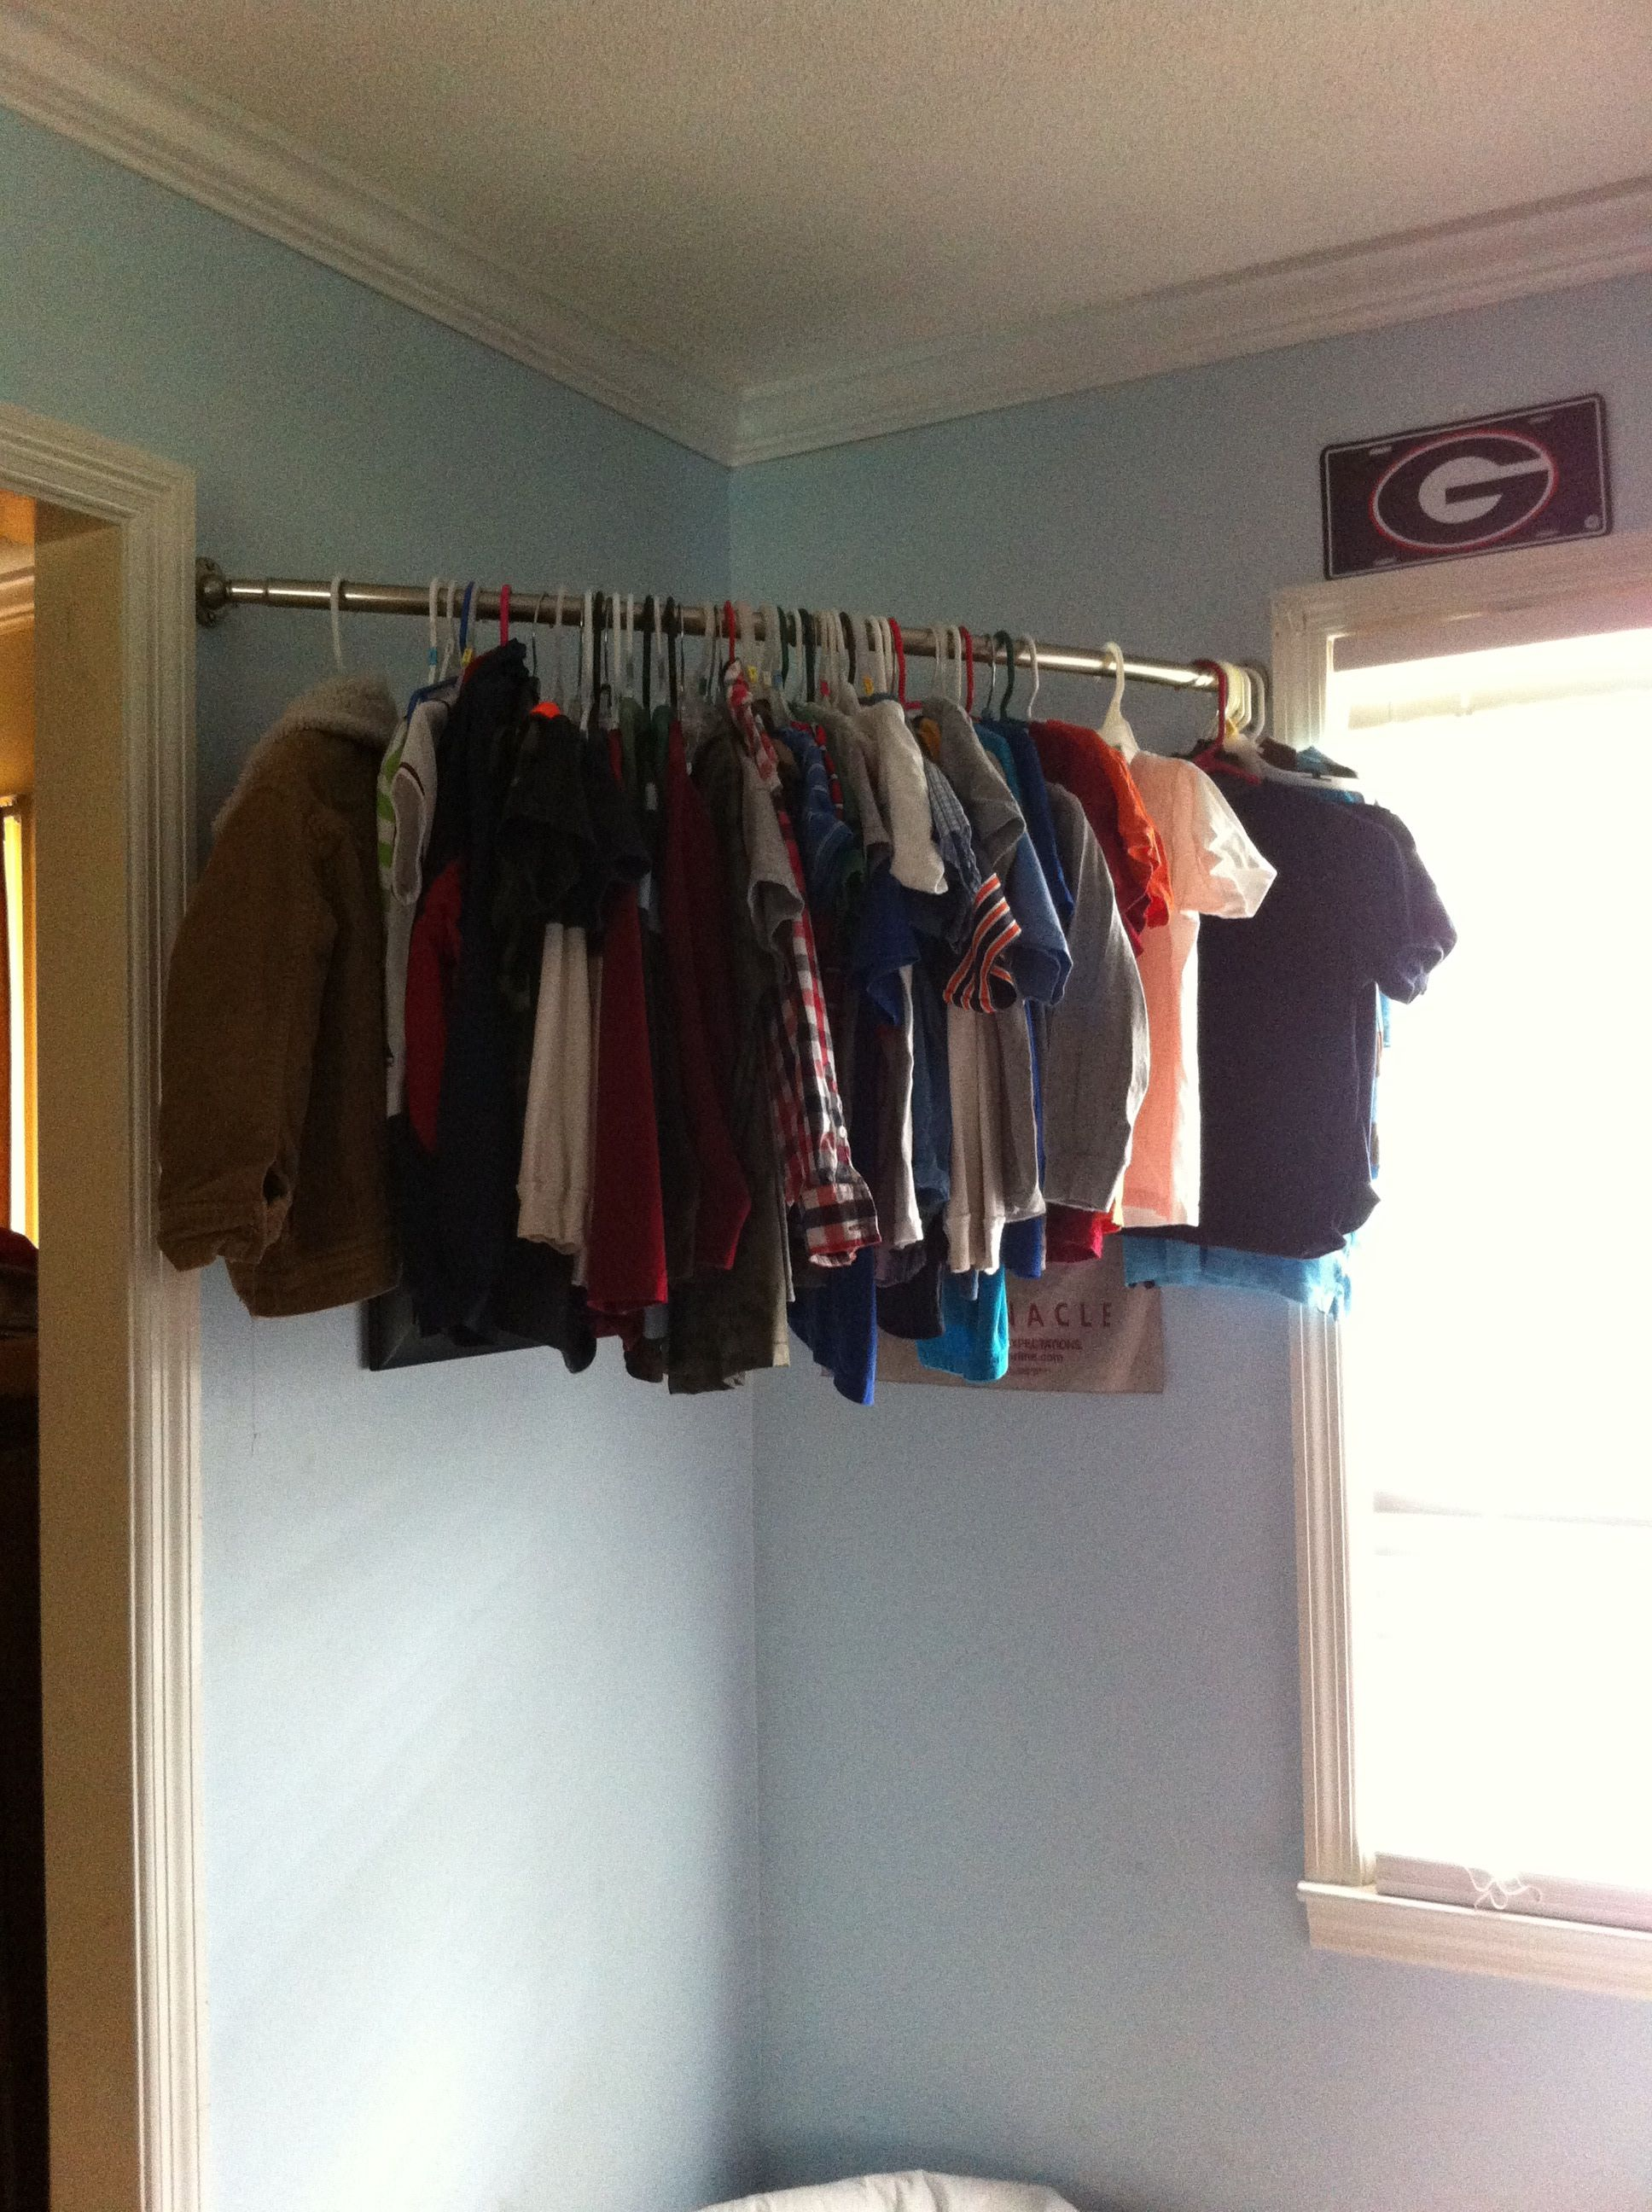 Curved Closet Rod Pleasing No Closet I Used A Curved Shower Rod For My Son's Clothes Review